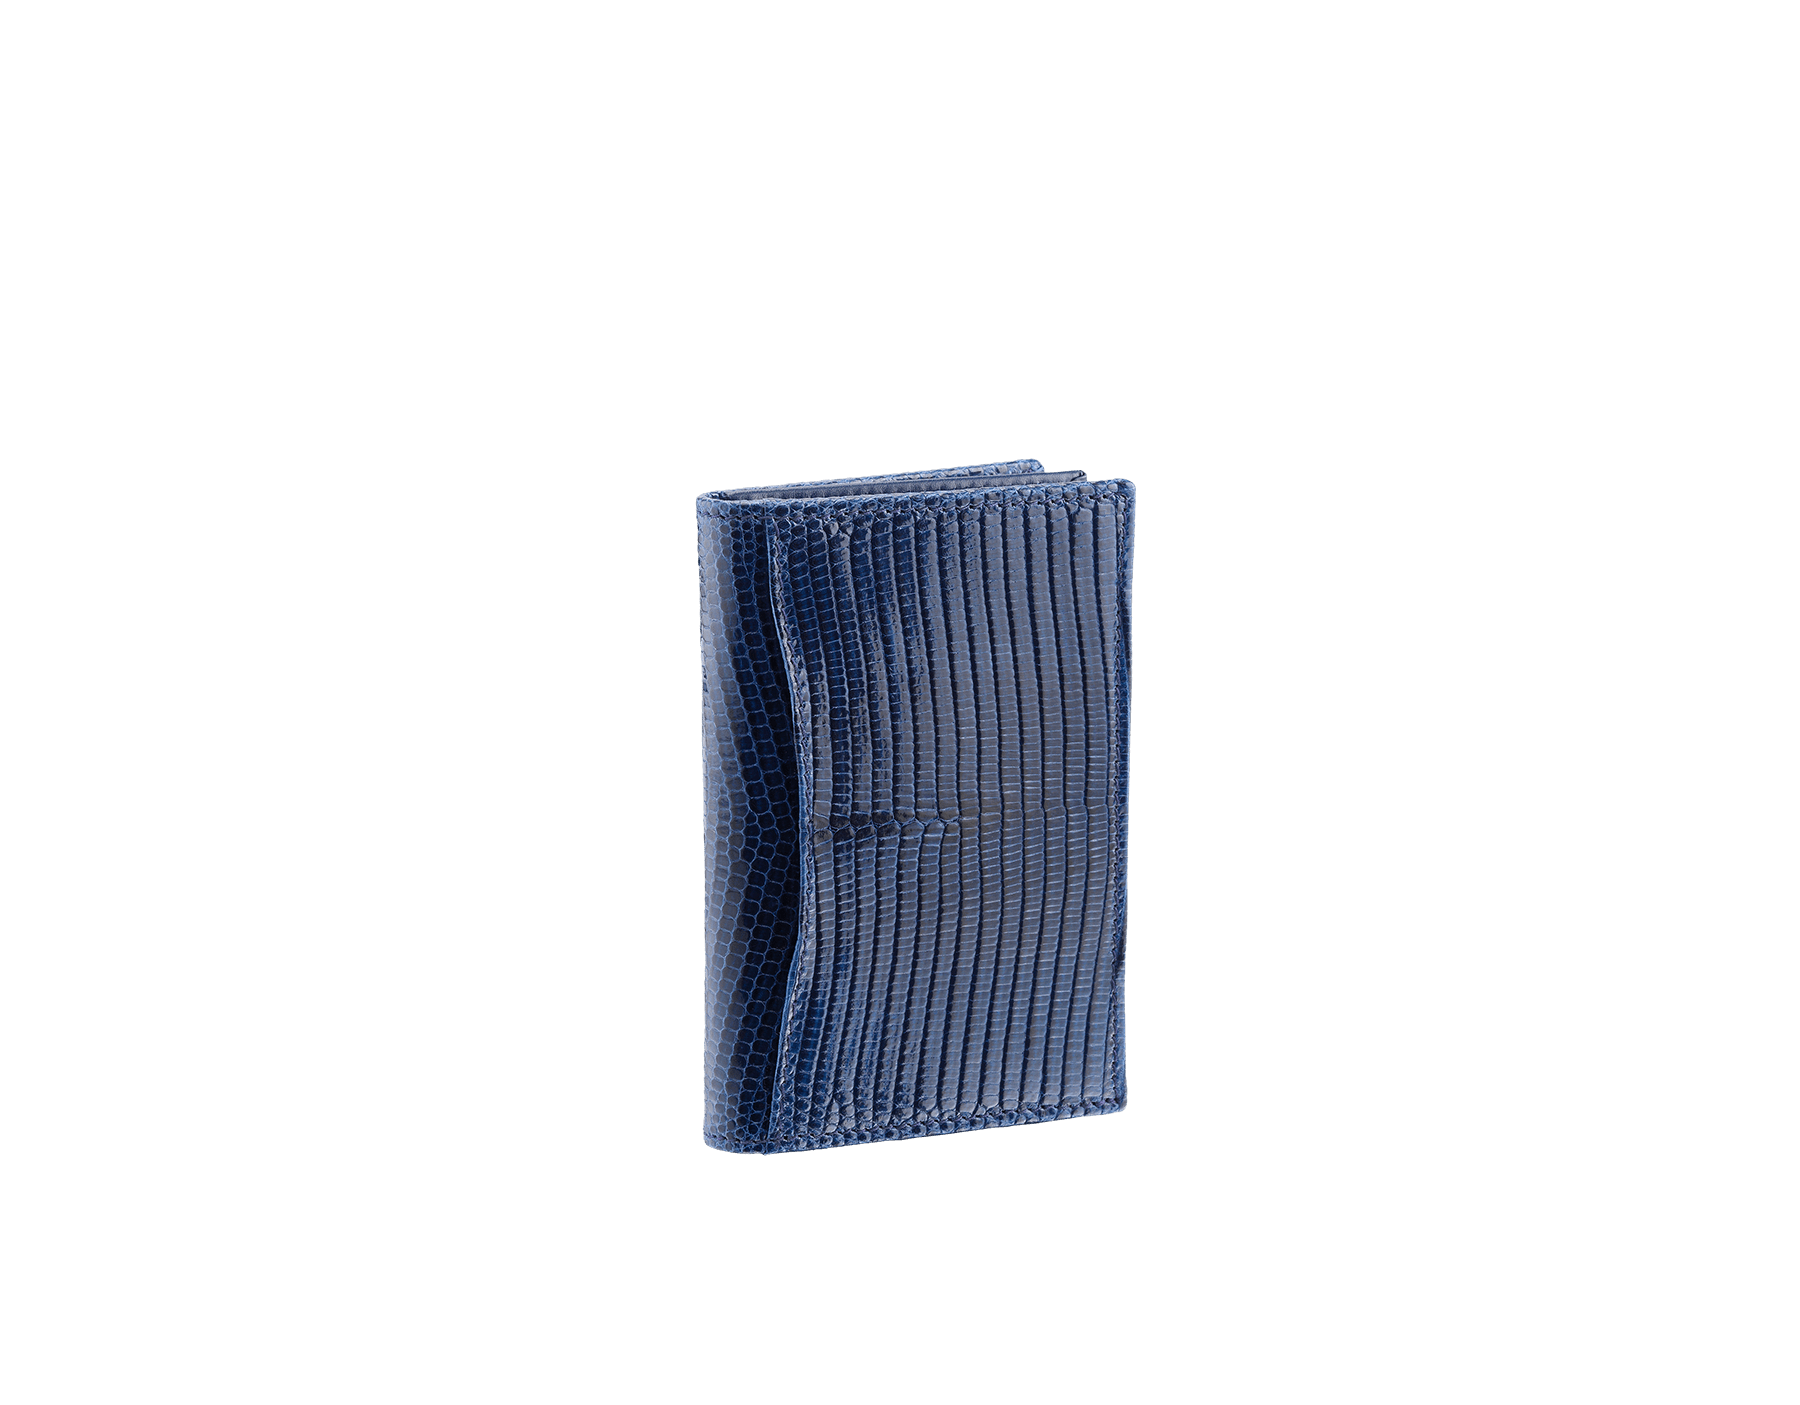 Business card holder in denim sapphire shiny lizard skin and calf leather with brass palladium plated BVLGARI BVLGARI motif. Three credit card slots, one open pocket and Business cards compartment. BBM-BC-HOLD-SIMPLE-sl image 3